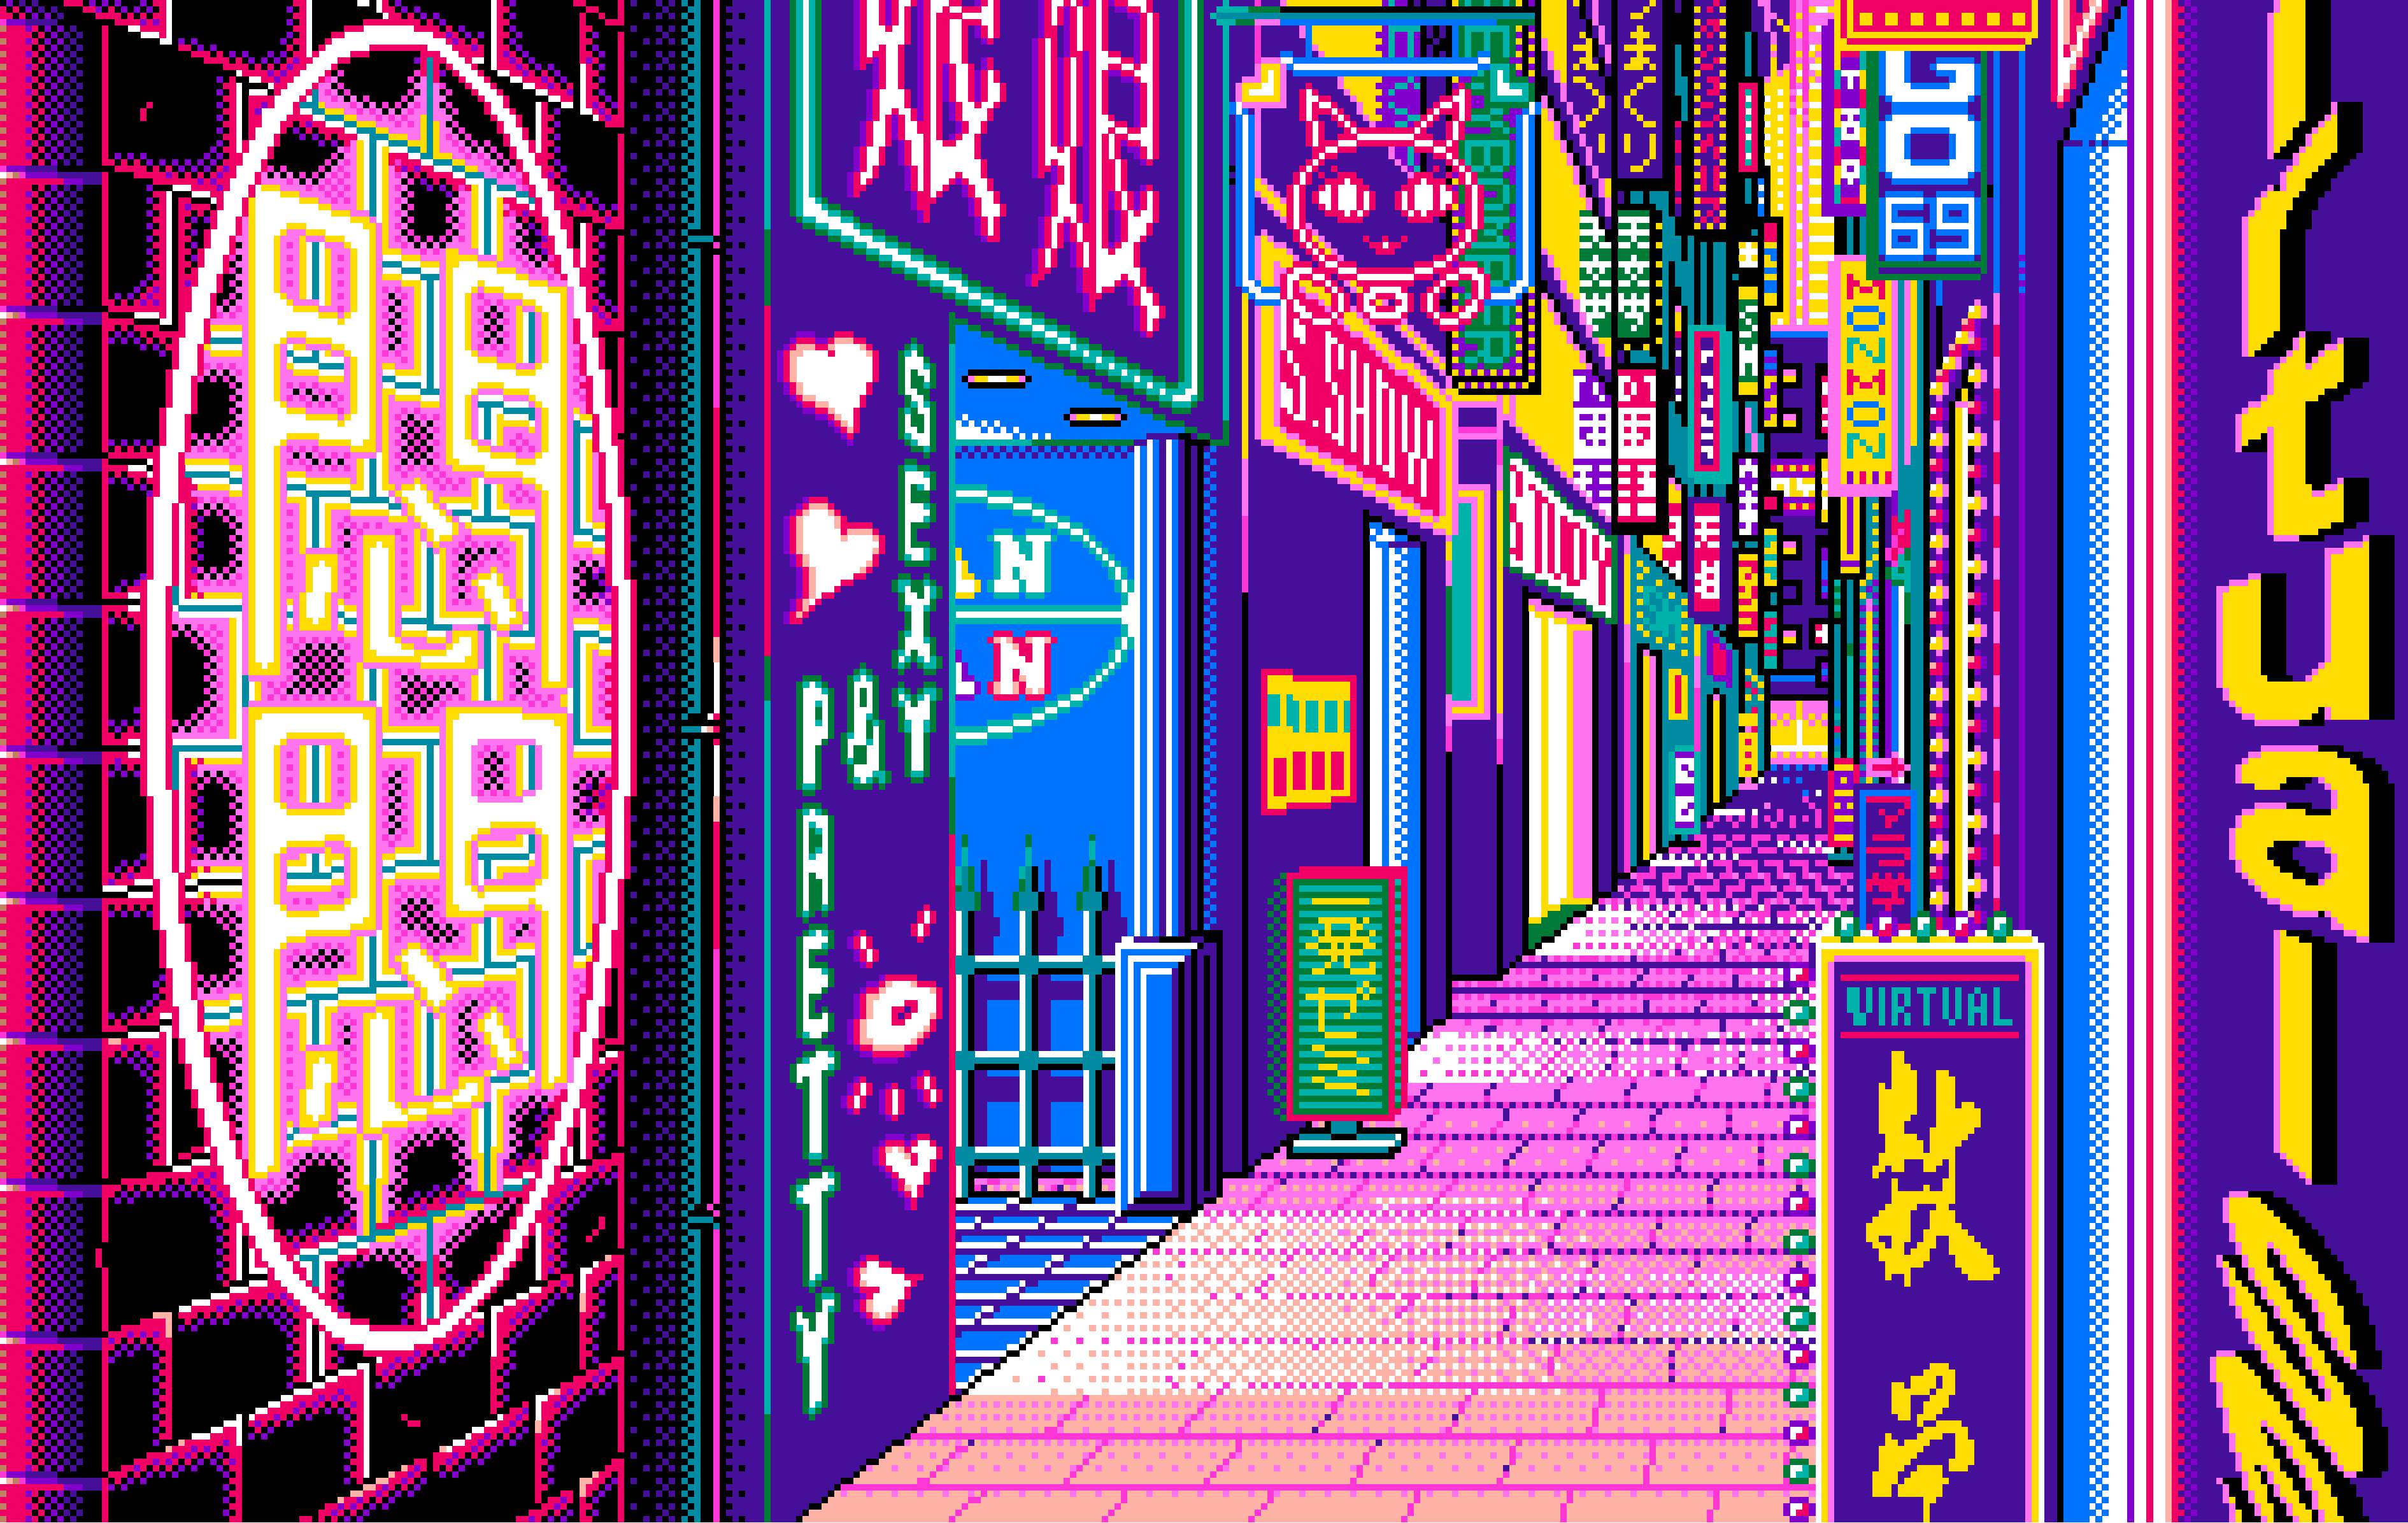 This gif has everything glitch pixel art graphic design vaporwave - Painting Art